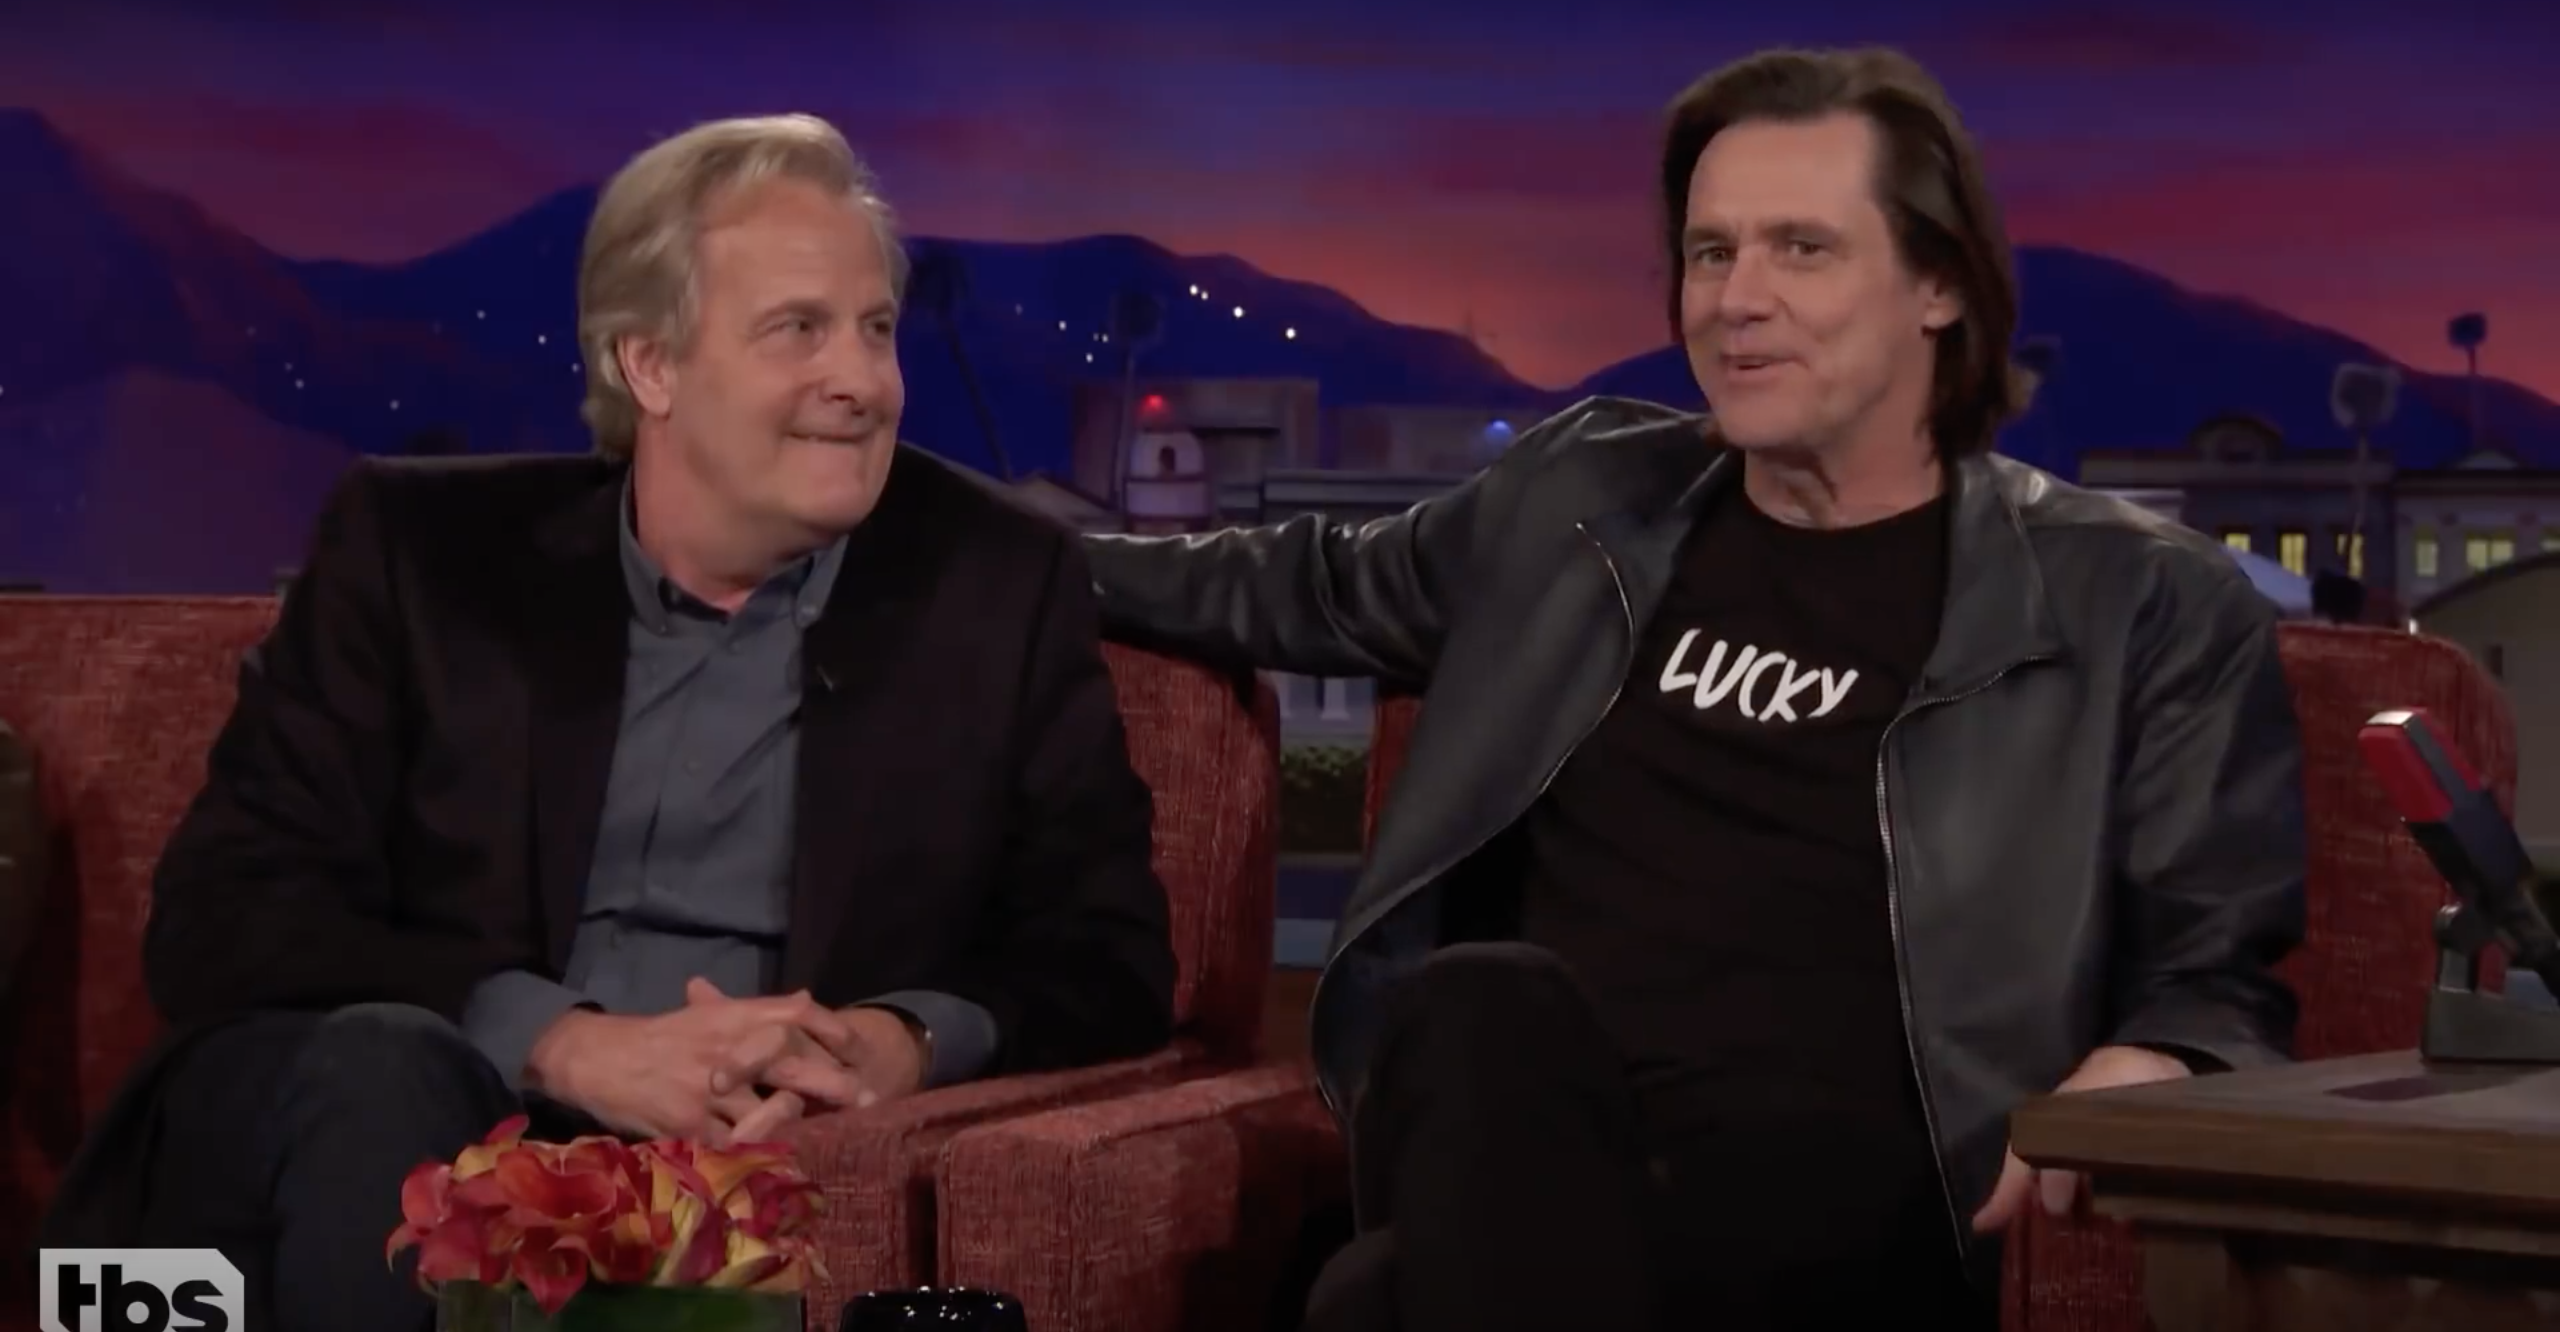 Dumb And Dumber Reunion On Conan